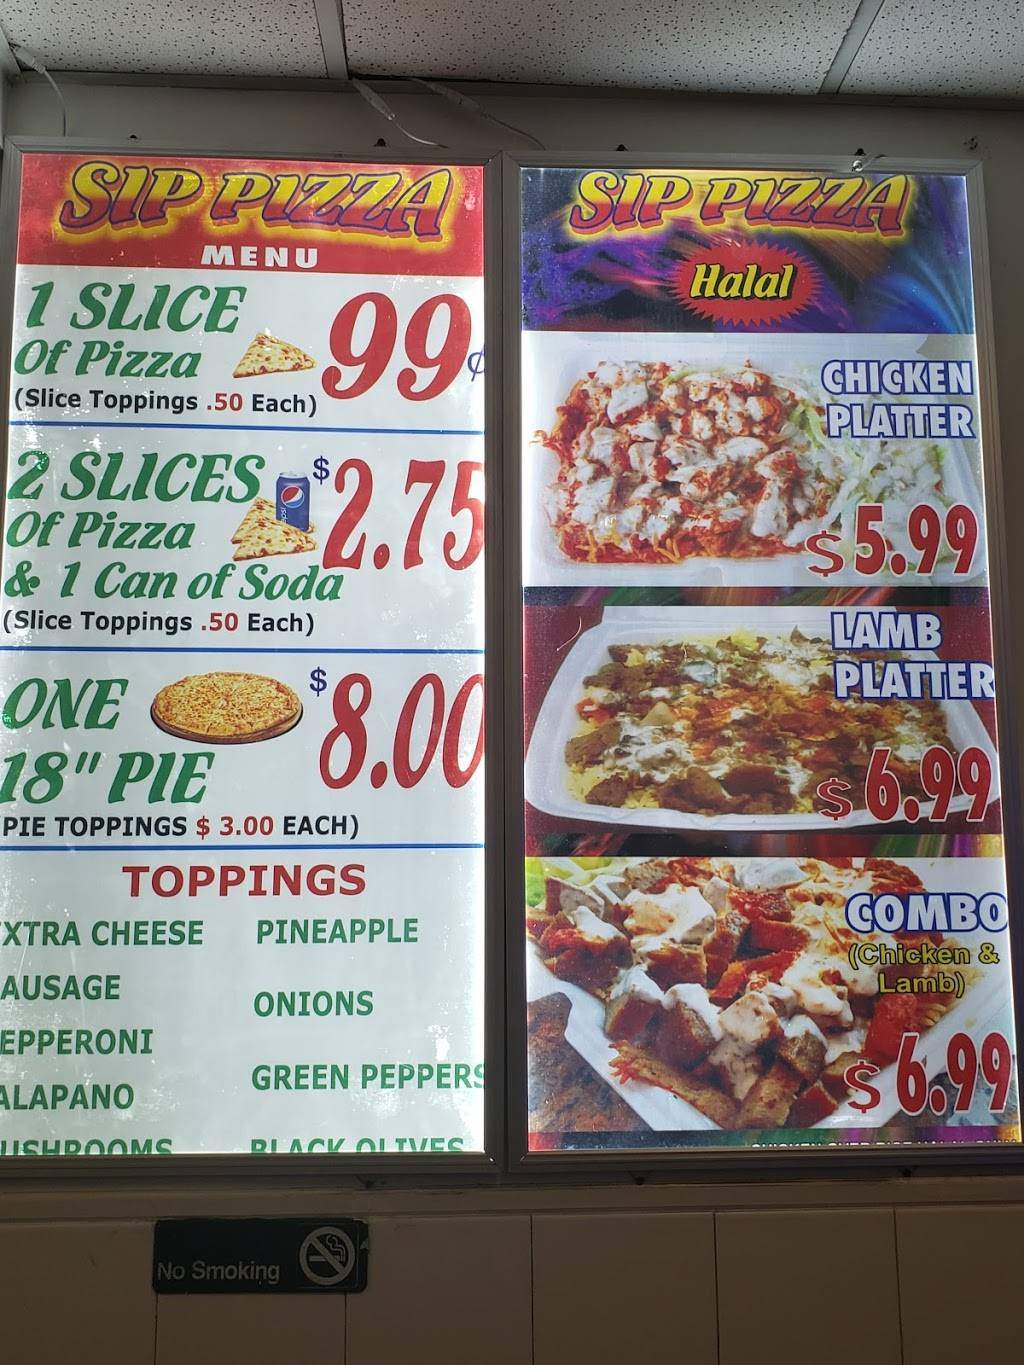 Sip Pizza | restaurant | 60 Sip Ave, Jersey City, NJ 07306, USA | 2014204800 OR +1 201-420-4800